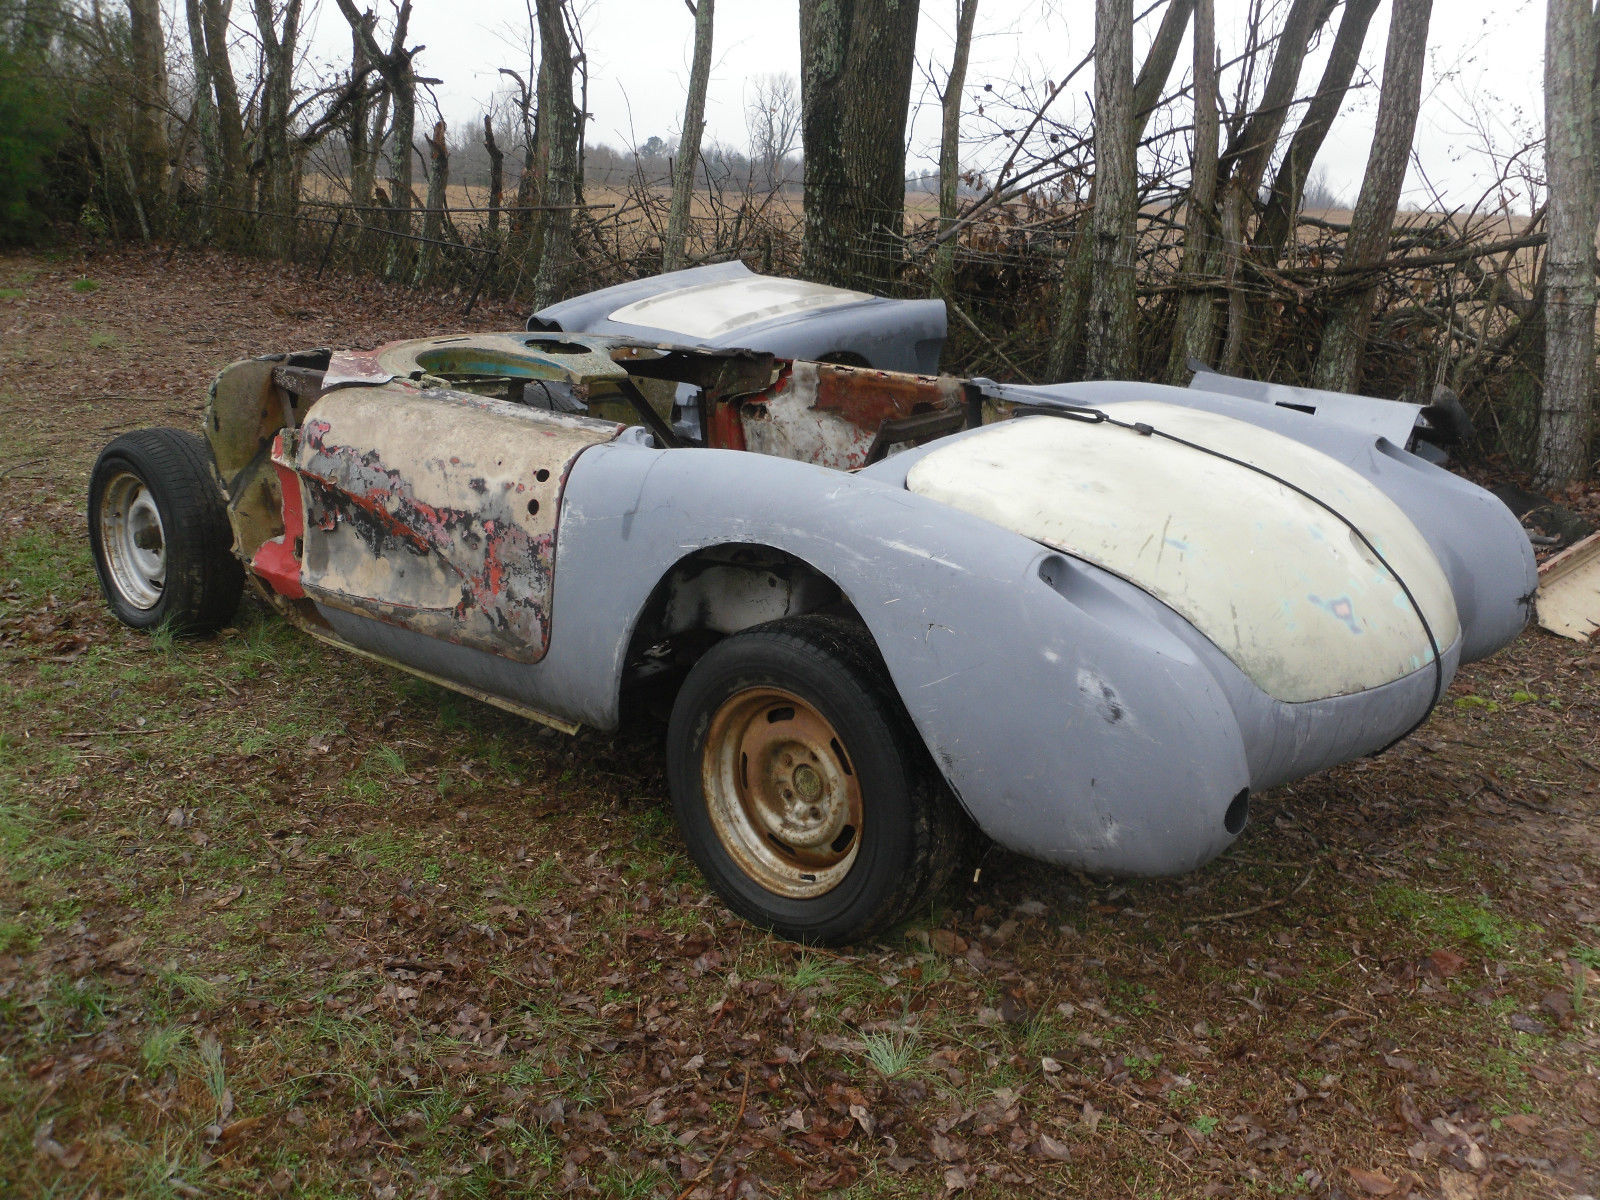 project corvette for sale Save $13,982 on a 1969 chevrolet corvette search over 15,500 listings to find the best local deals cargurus analyzes over 6 million cars daily.